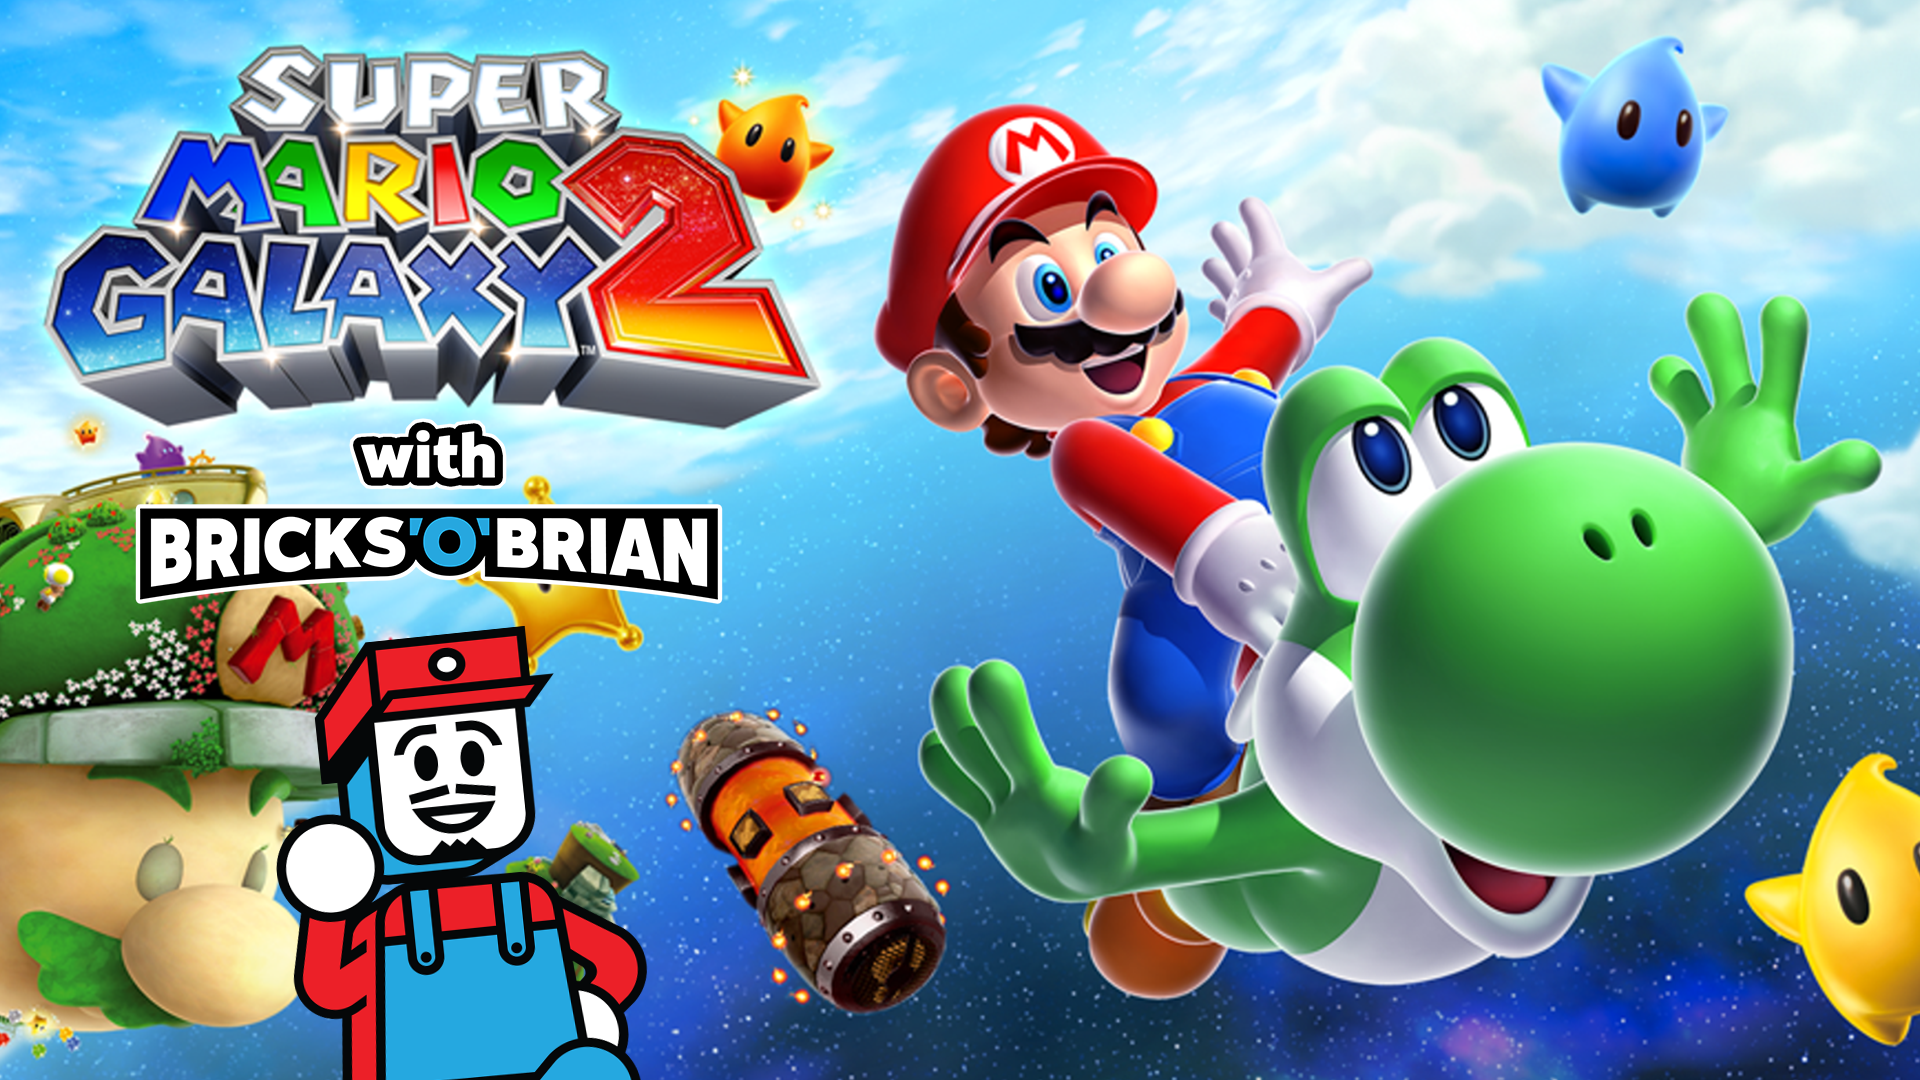 Clip: Super Mario Galaxy 2 with Bricks 'O' Brian!